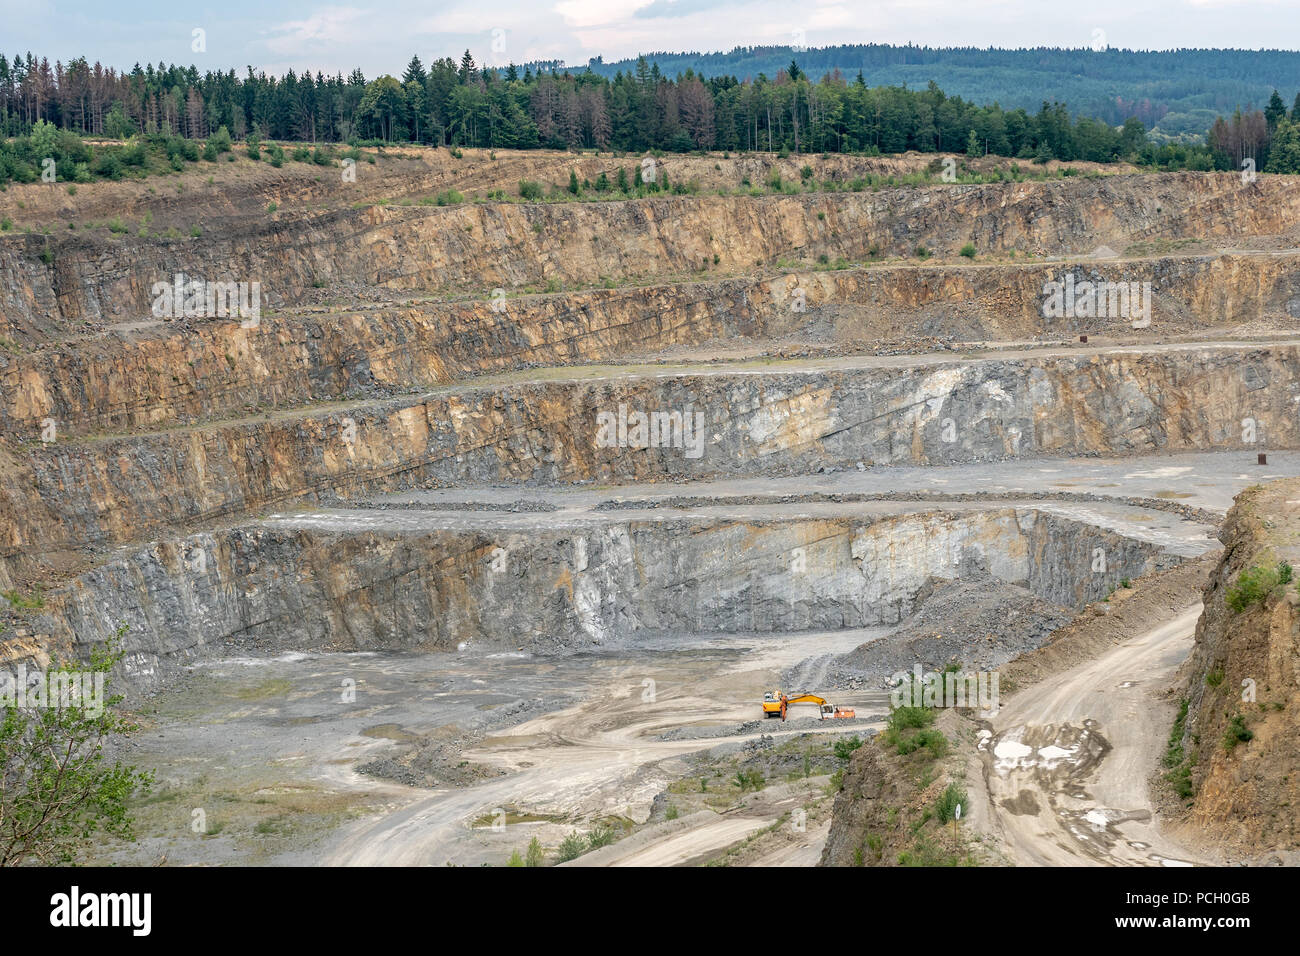 Opencast mining quarry with machinery. Quarrying of stones for construction works. Mining industry in quarry. Stock Photo